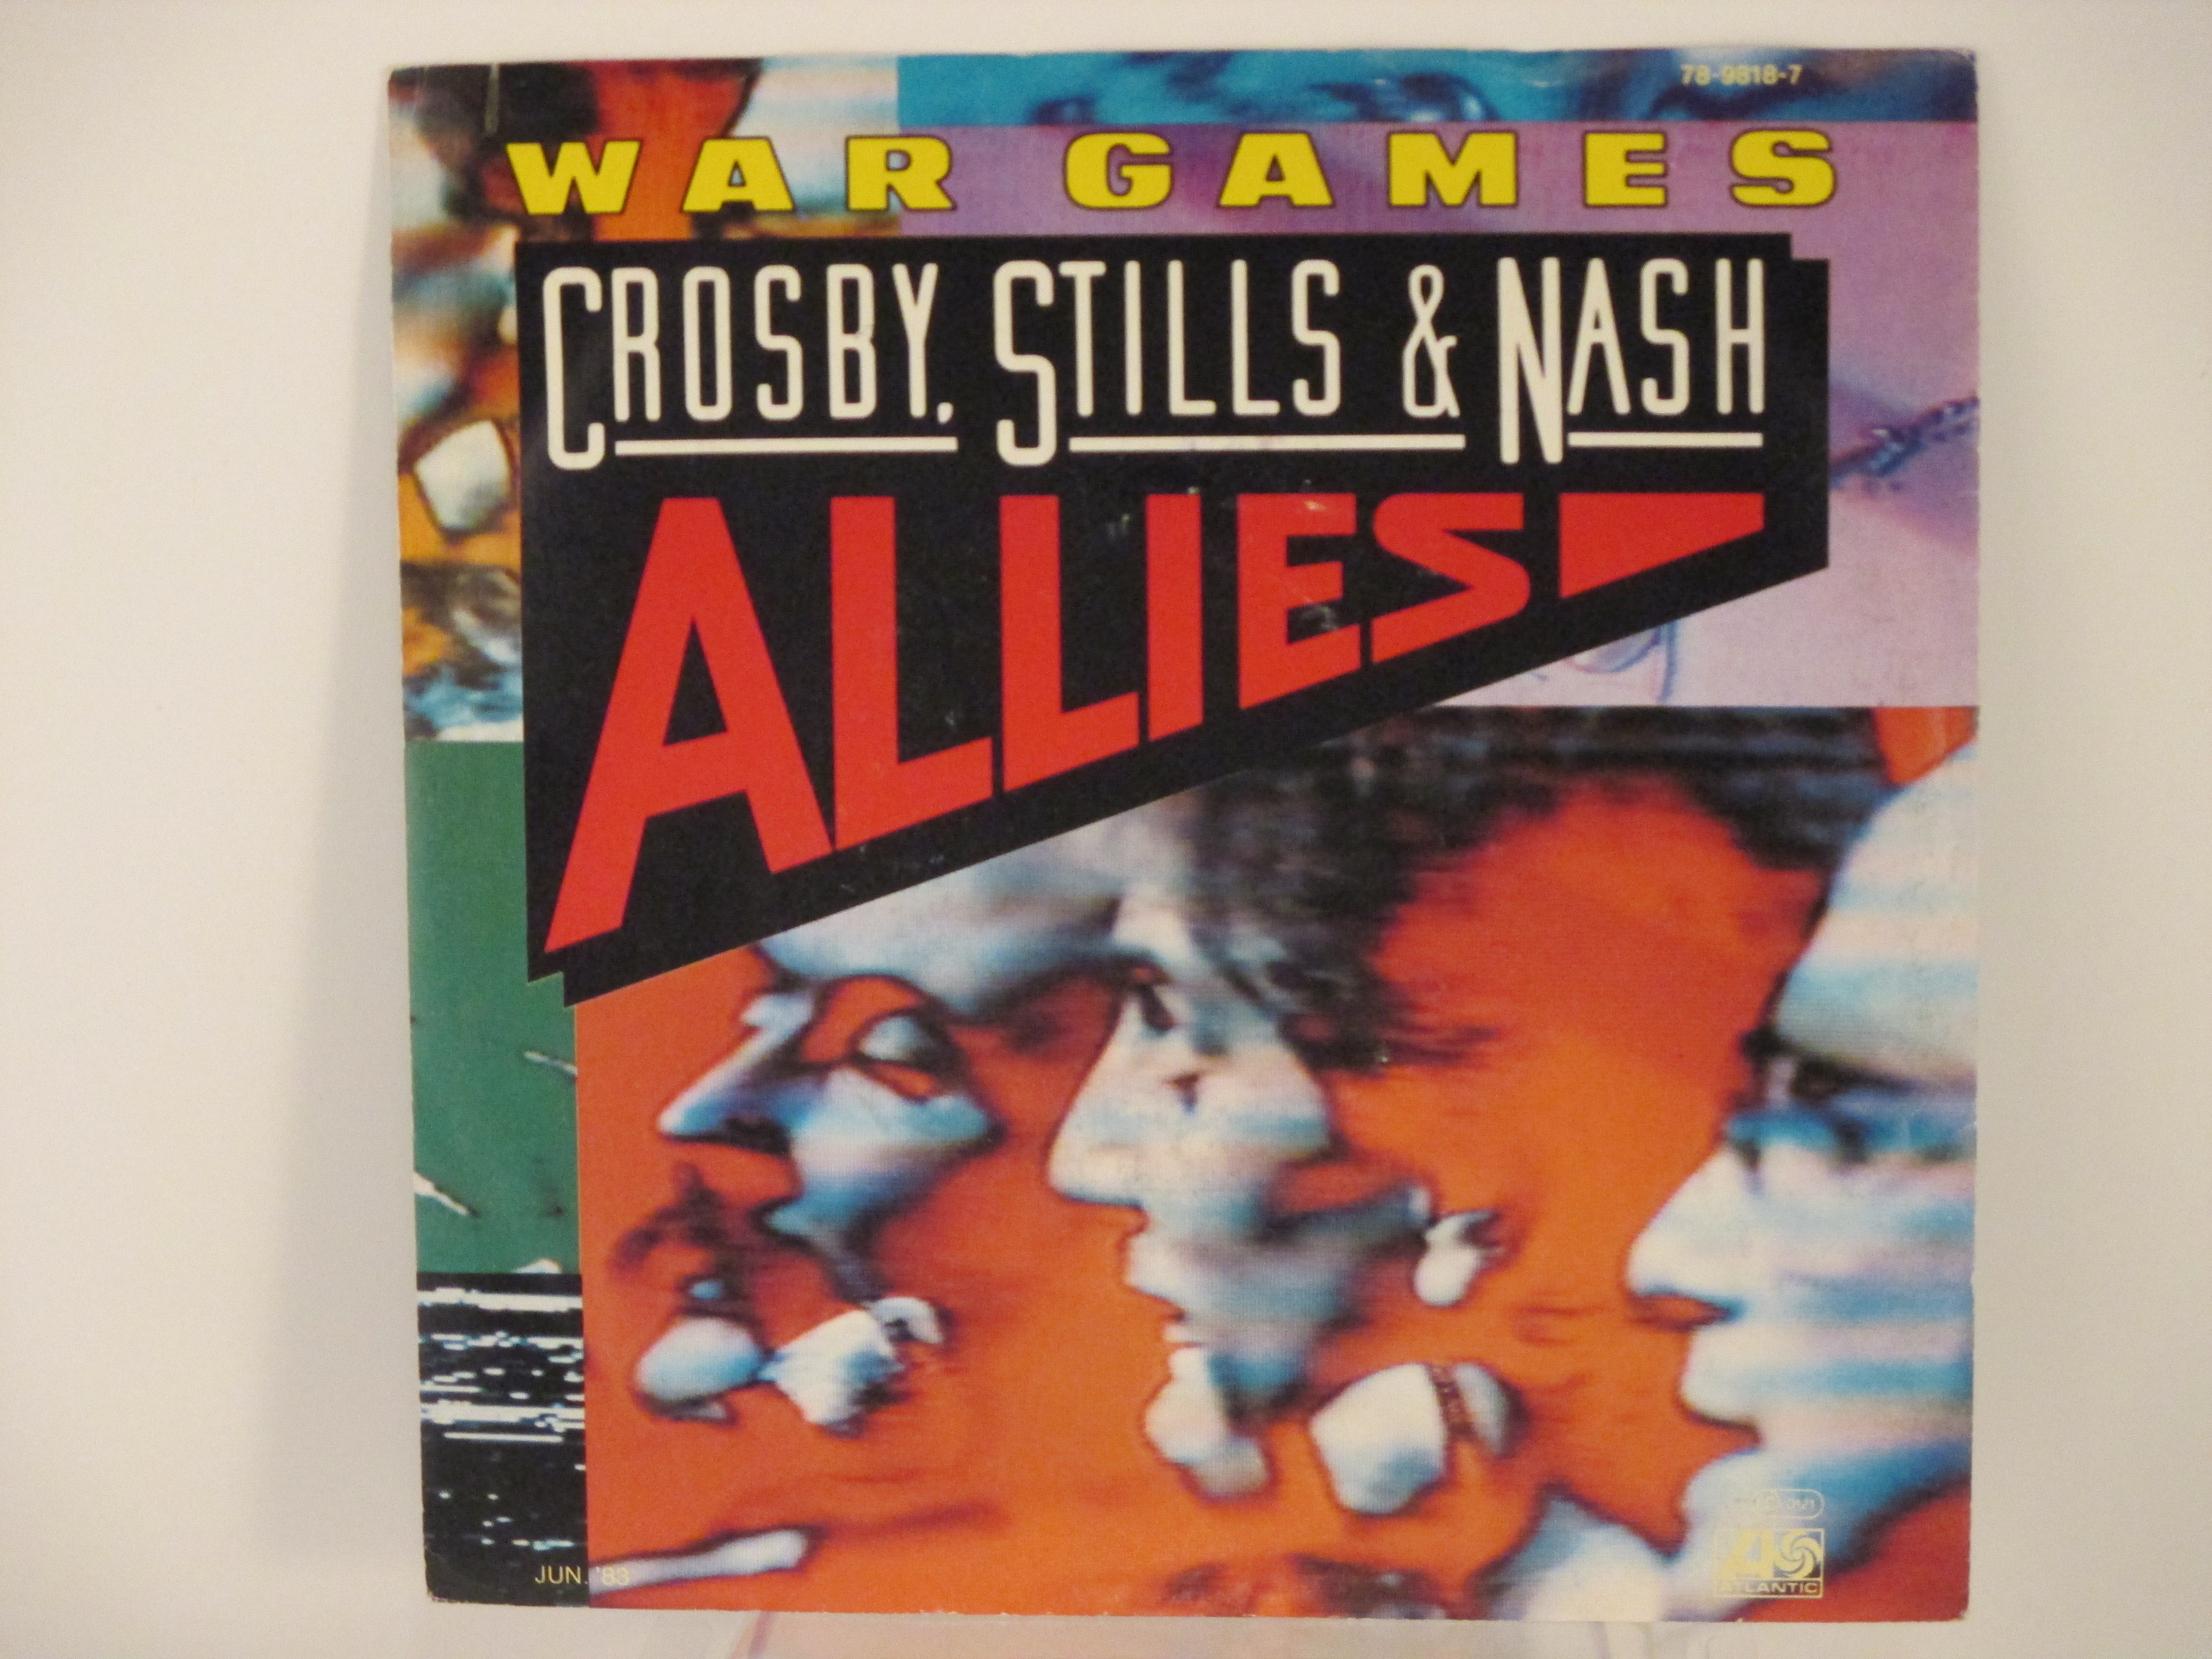 CROSBY; STILLS & NASH : War games / Shadow Captain